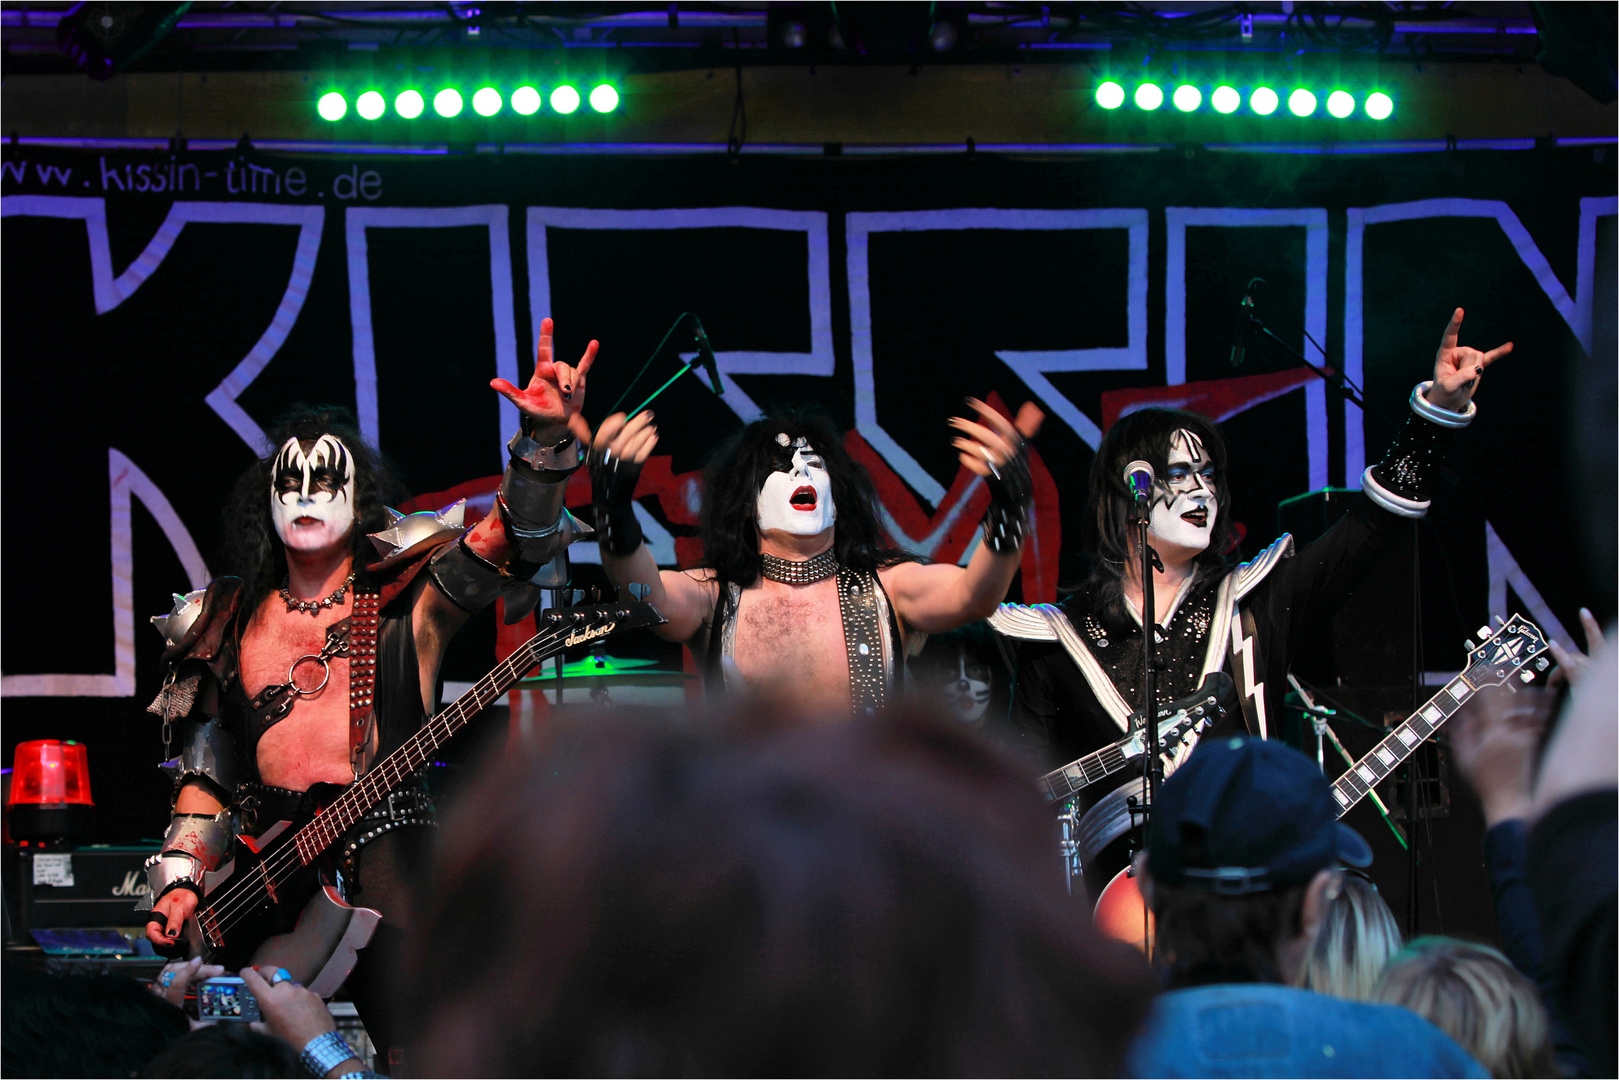 KISS`IN TIME